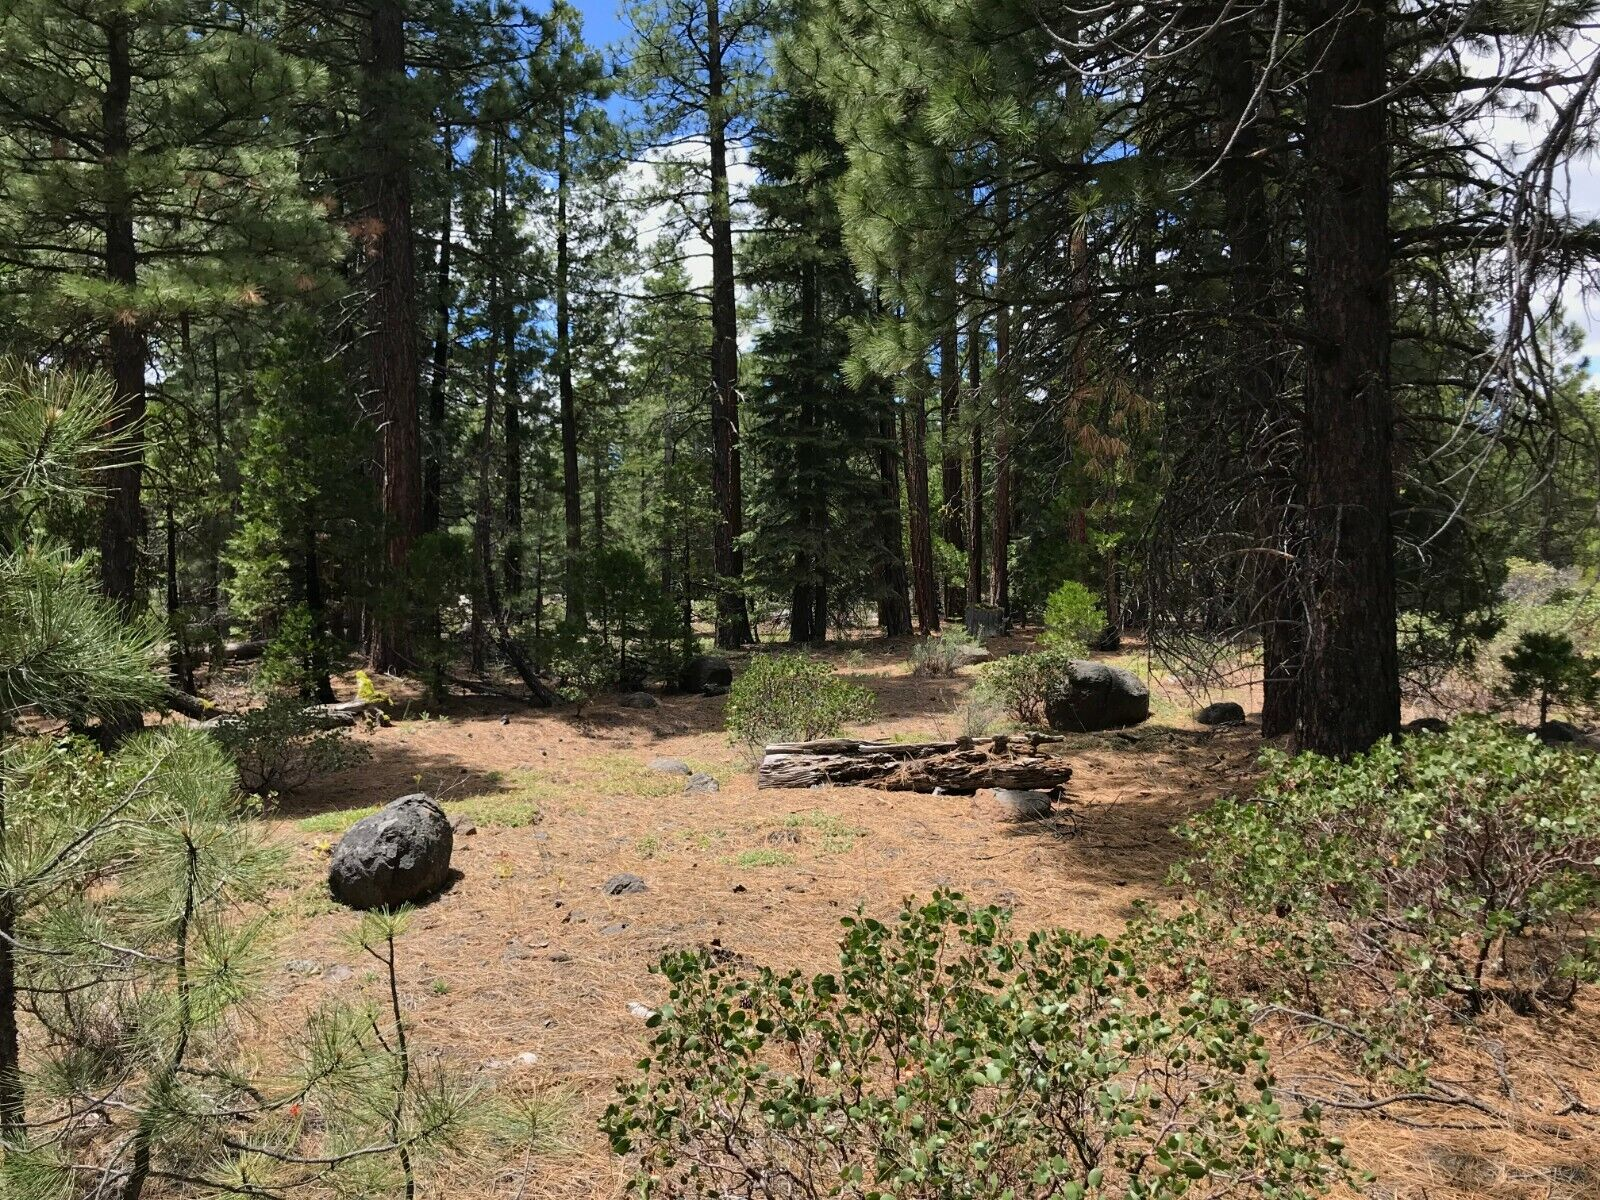 California Land For Sale - LG 1.421 Acres With Tall Trees & Level - Modoc County